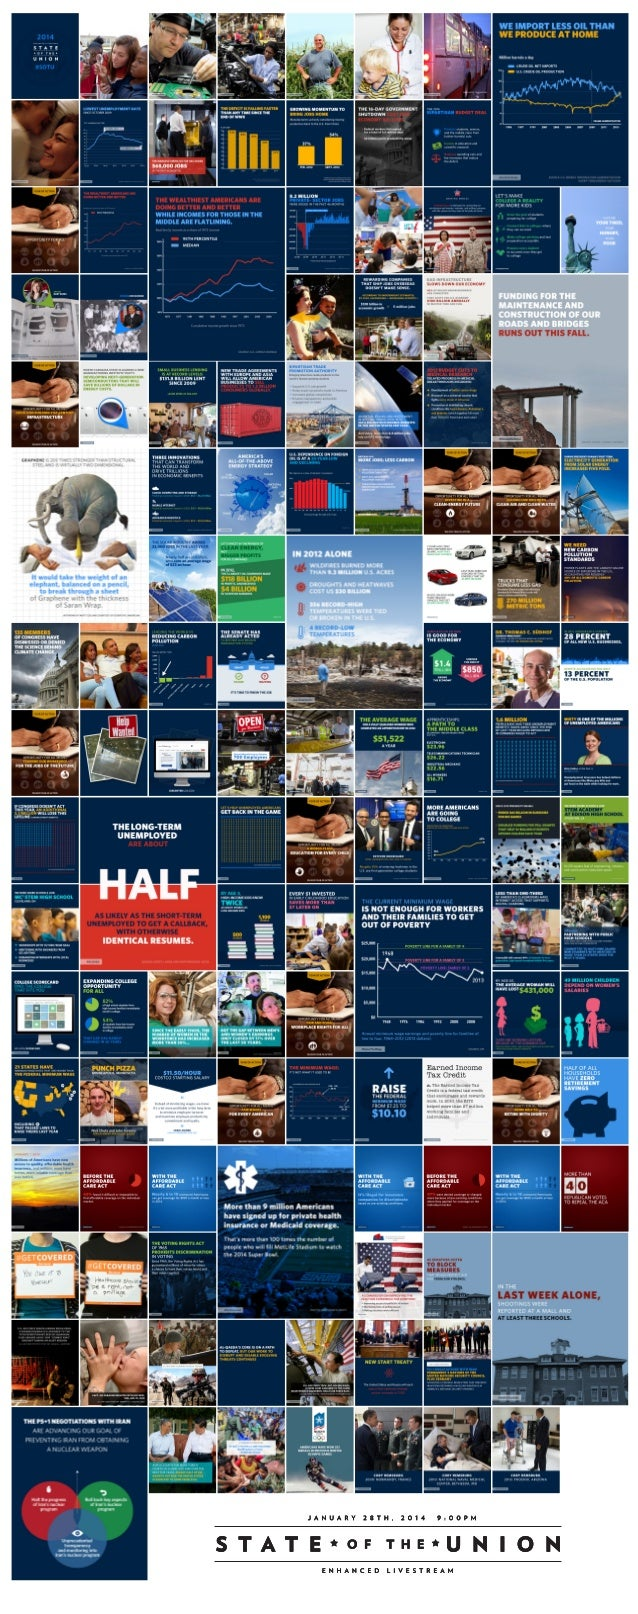 White House State of the Union 2014 Enhanced Graphics Poster